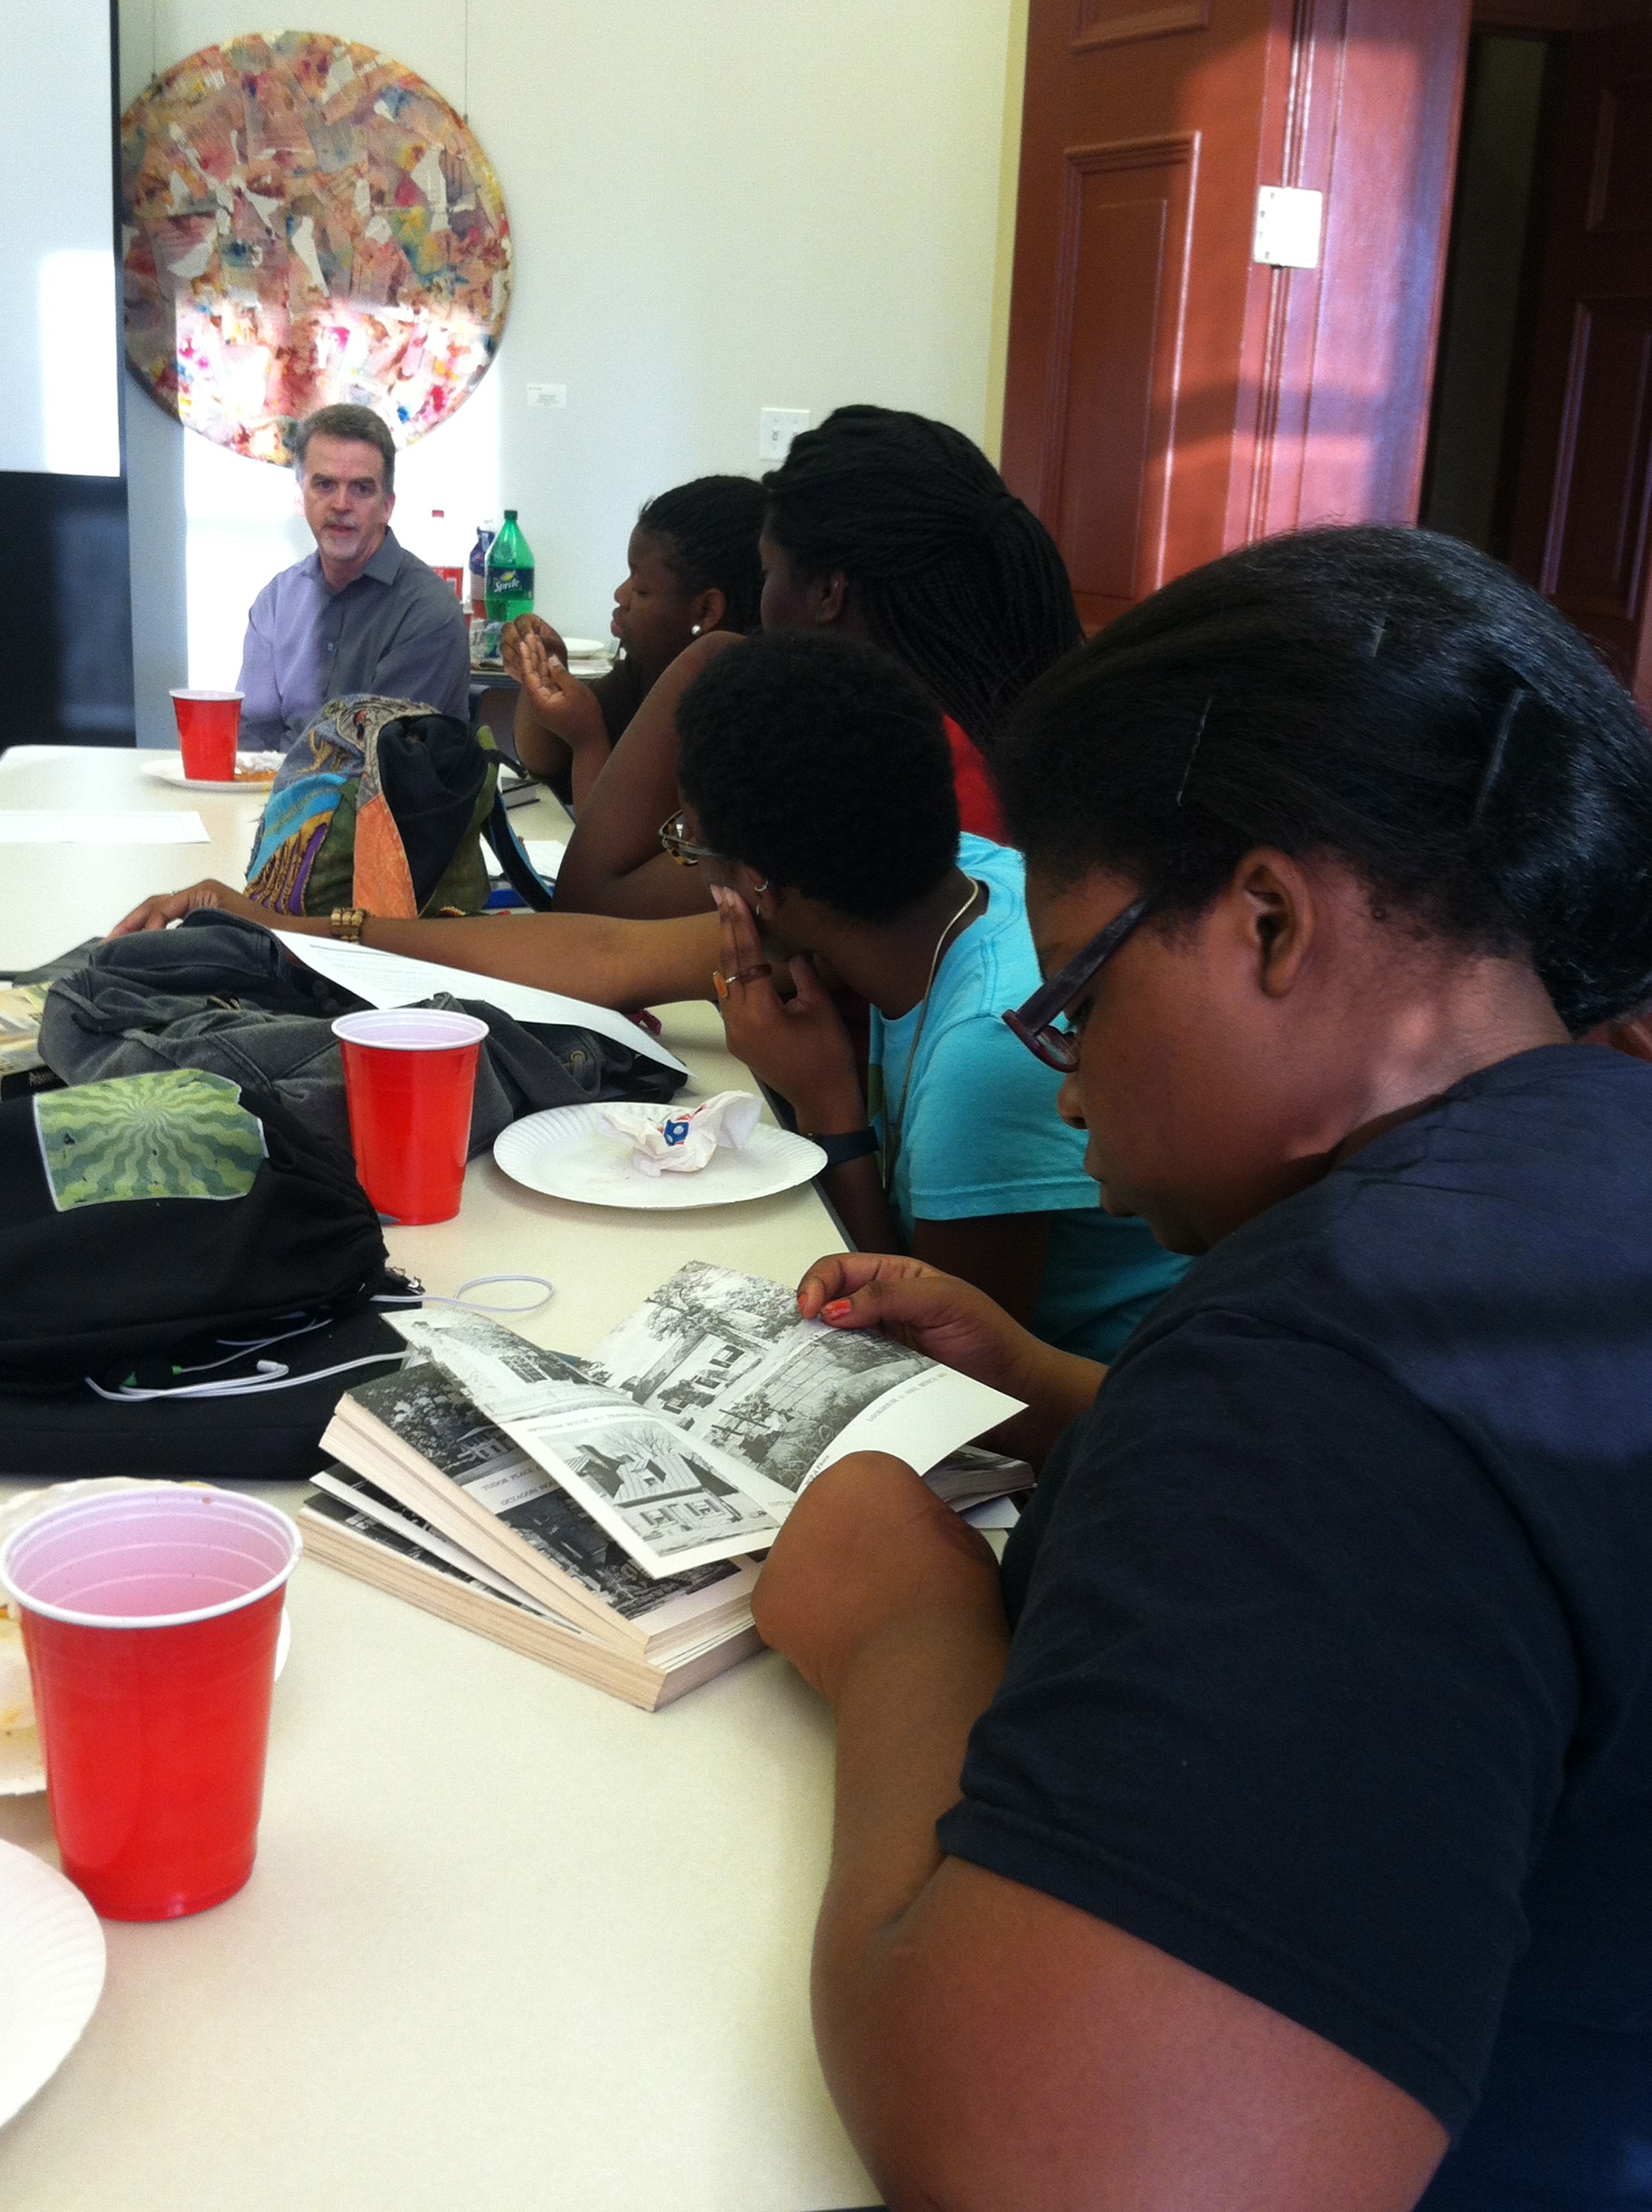 Students examine the WPA Guide to Washington, DC as David A. Taylor talks about the Federal Writers' Project.